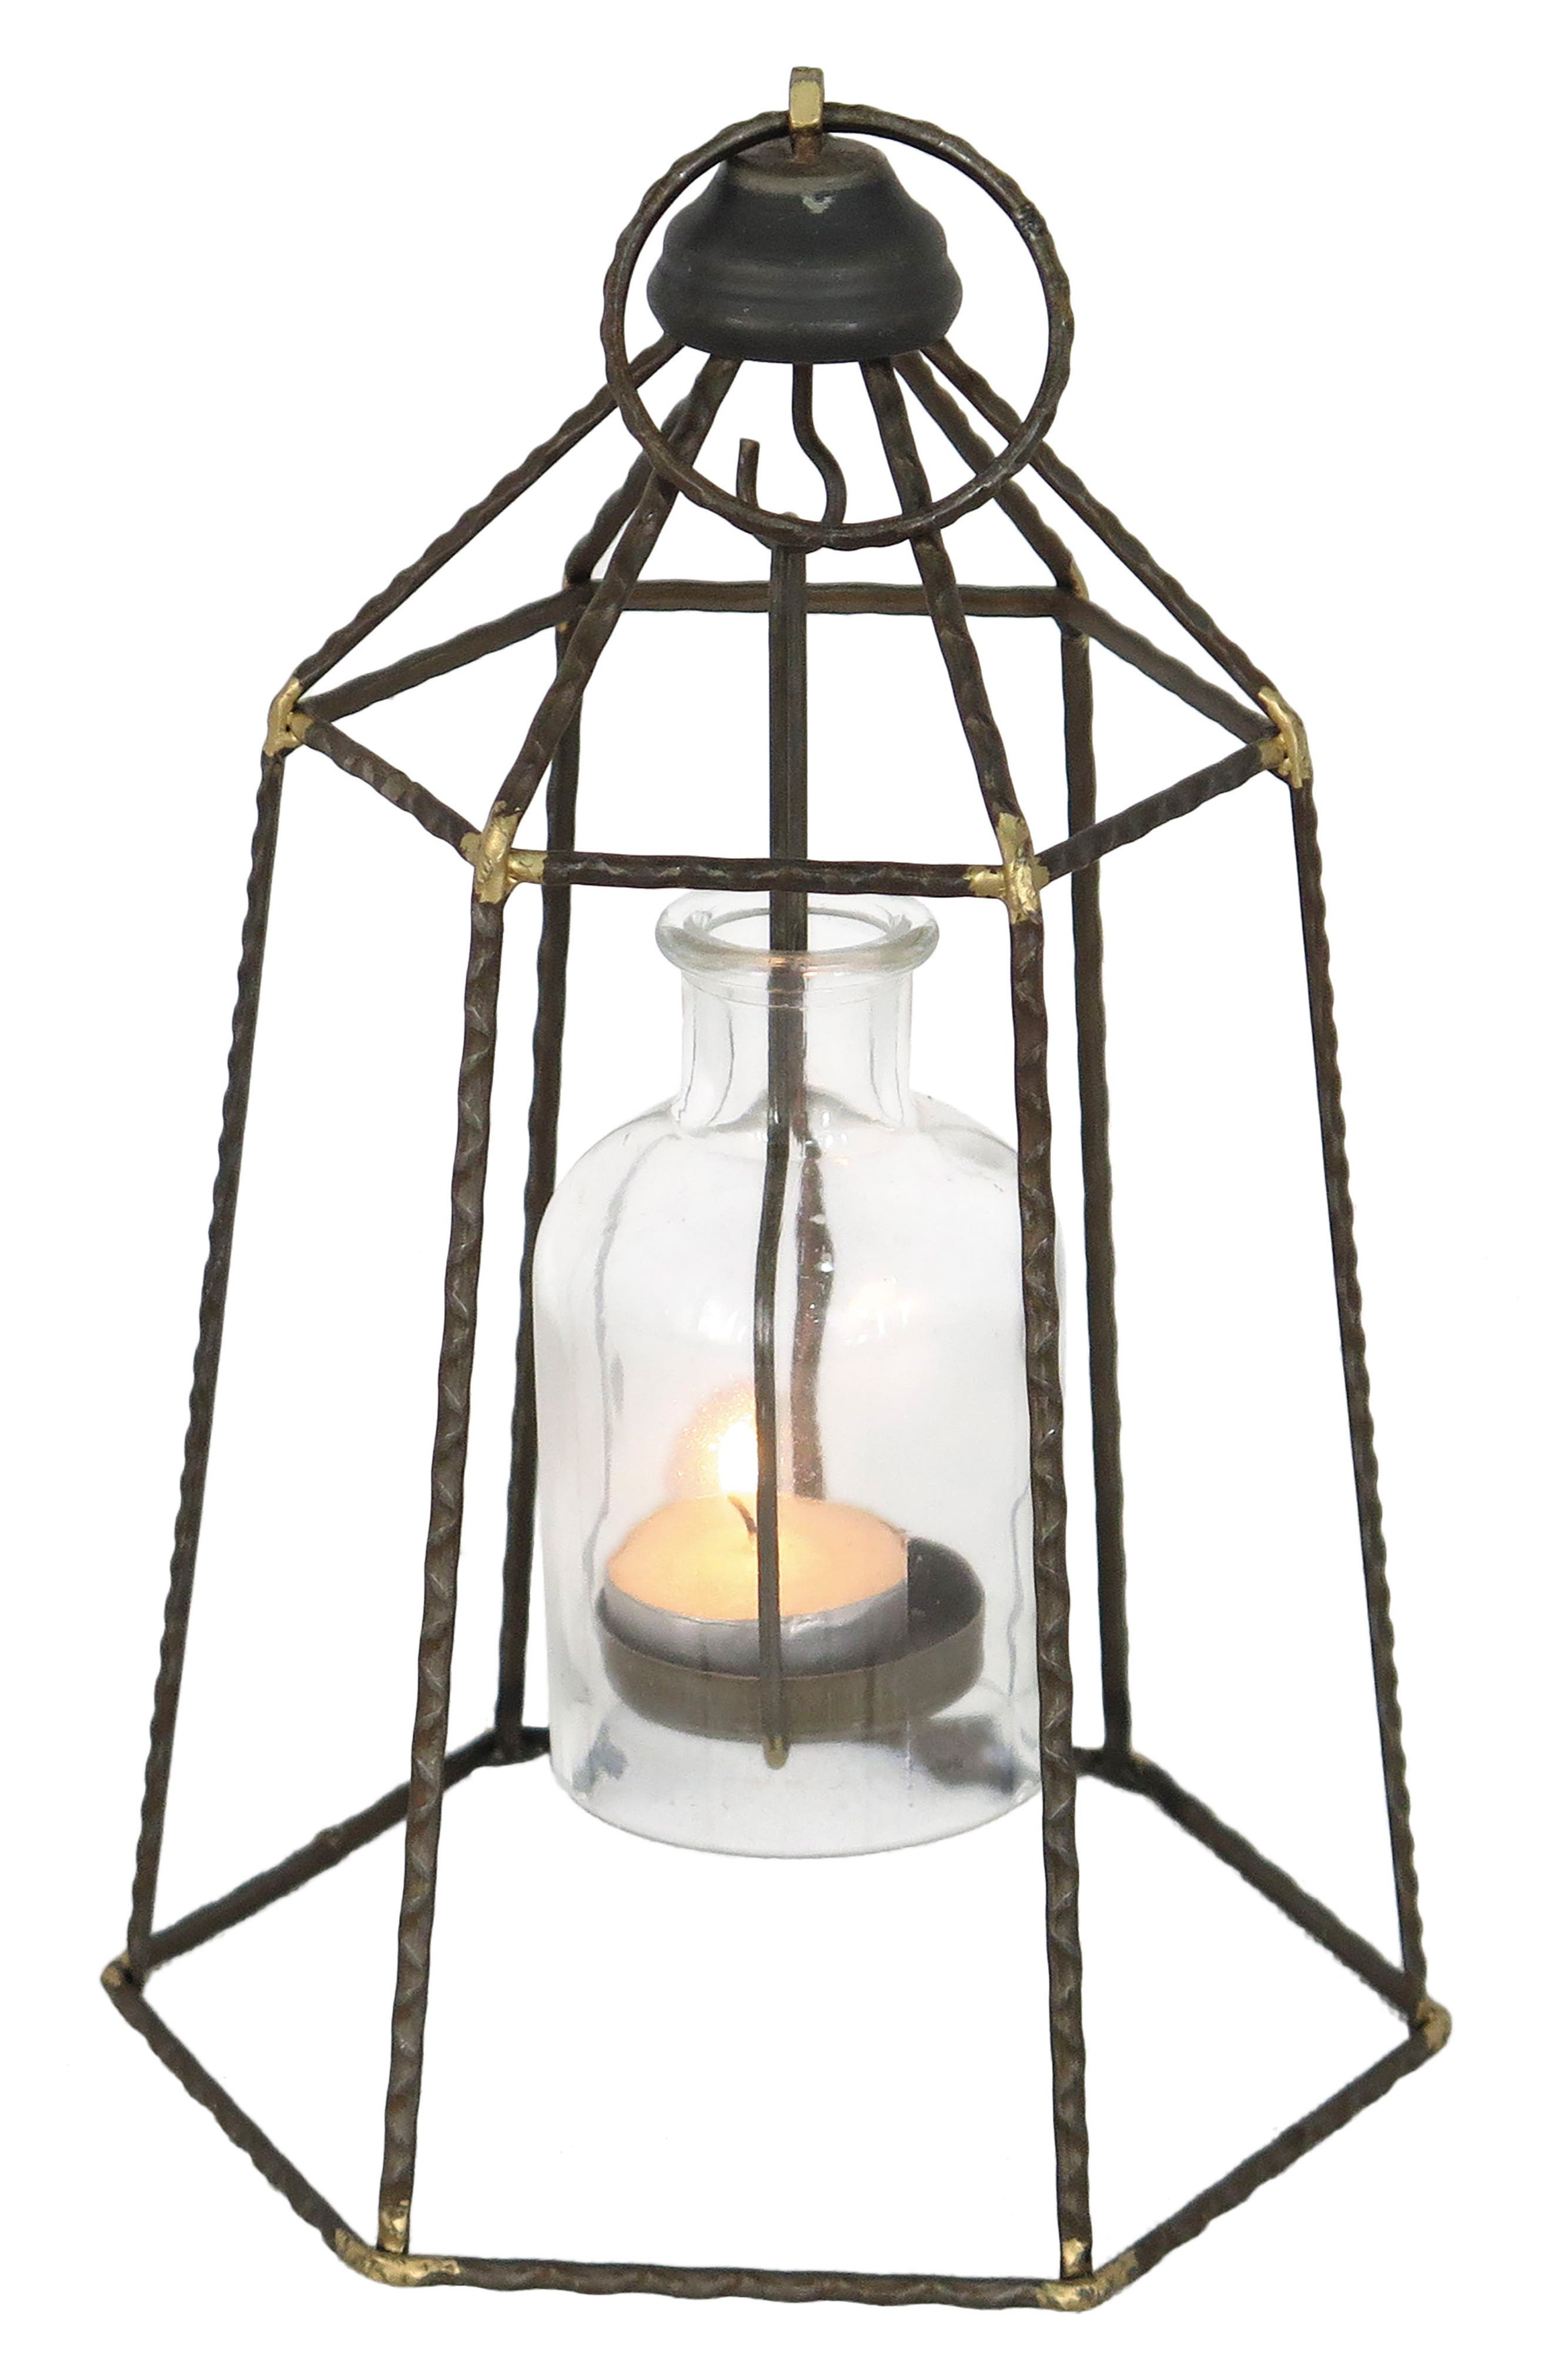 Main Image - Foreside Small Pendant Votive Candle Holder